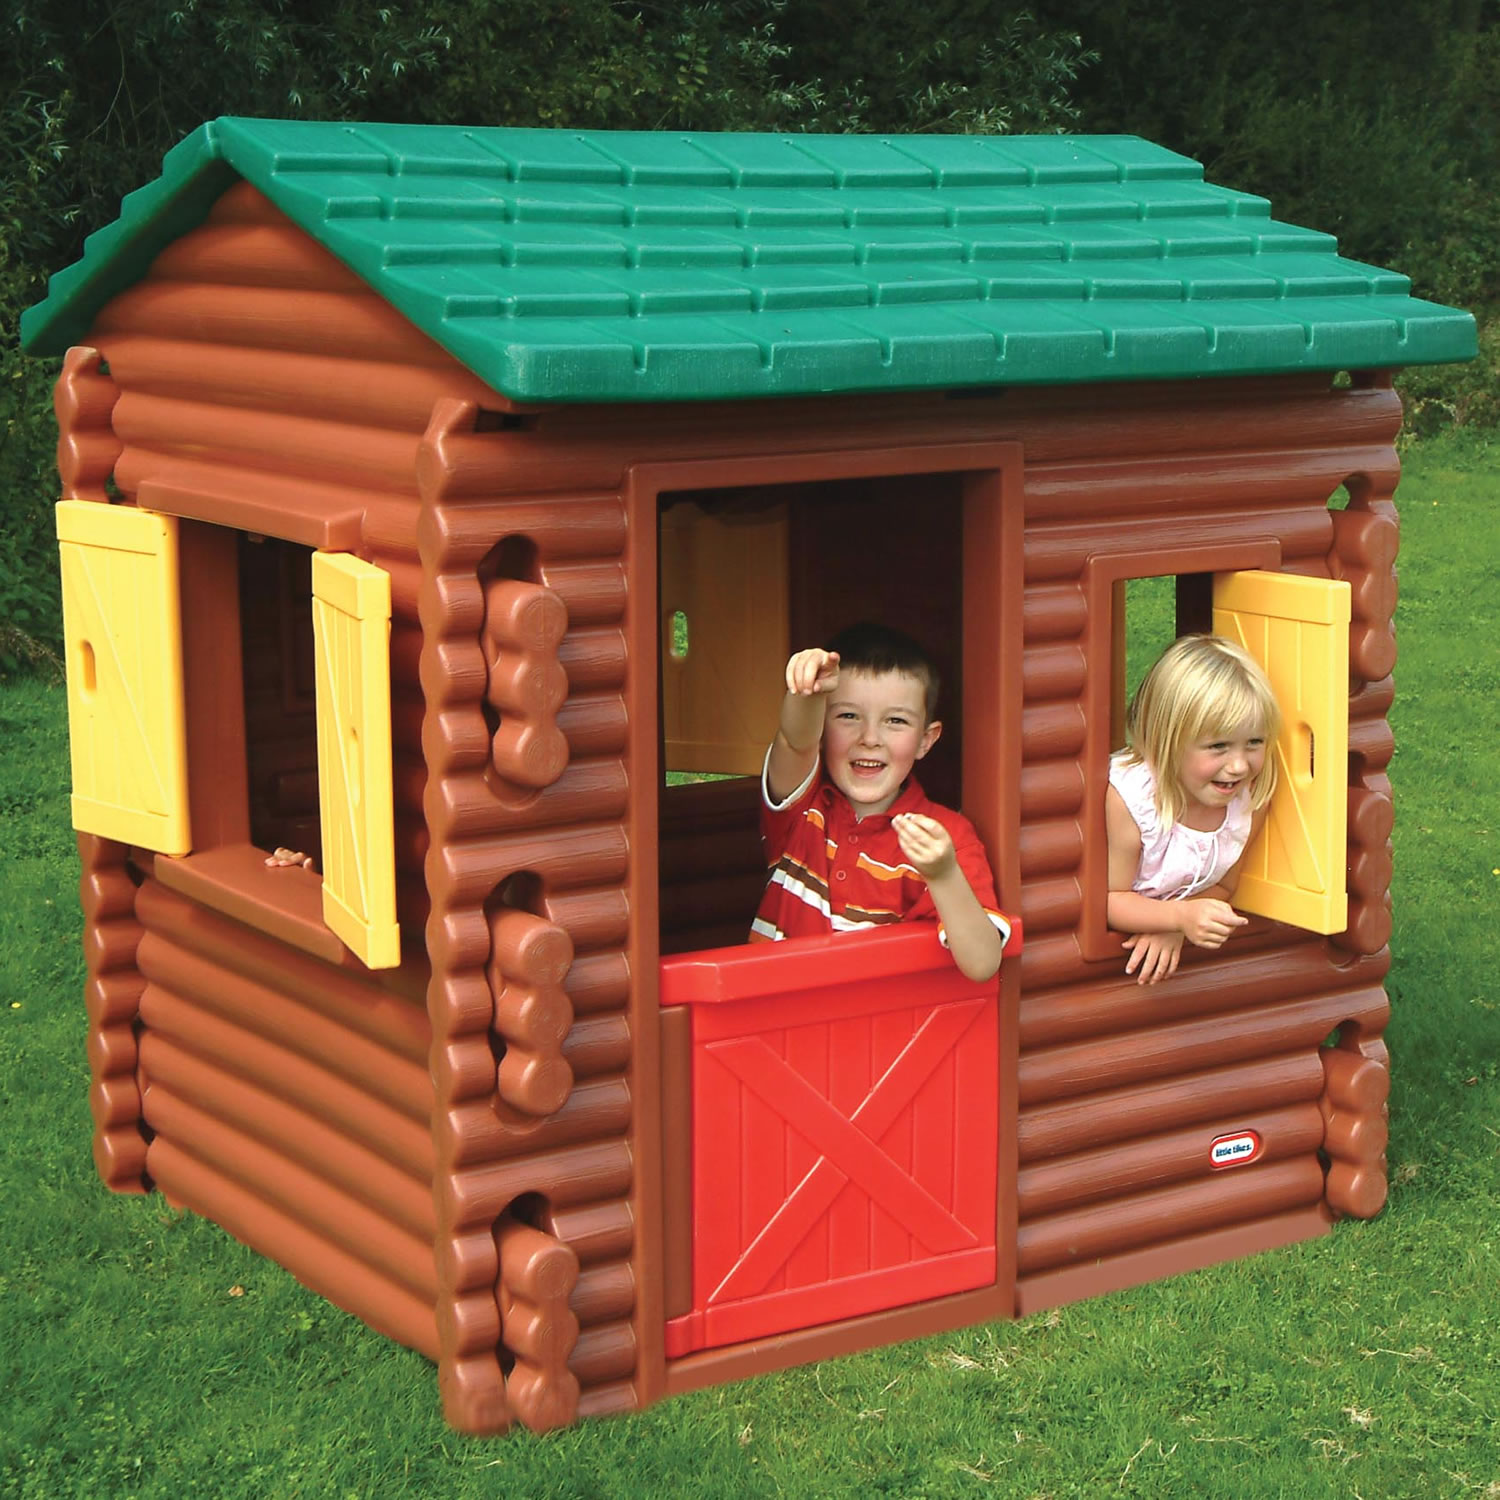 Wonderful Little Tikes Playhouse With Brown Siding And Green Roof On Green Grass For Cute Playground Decor Ideas